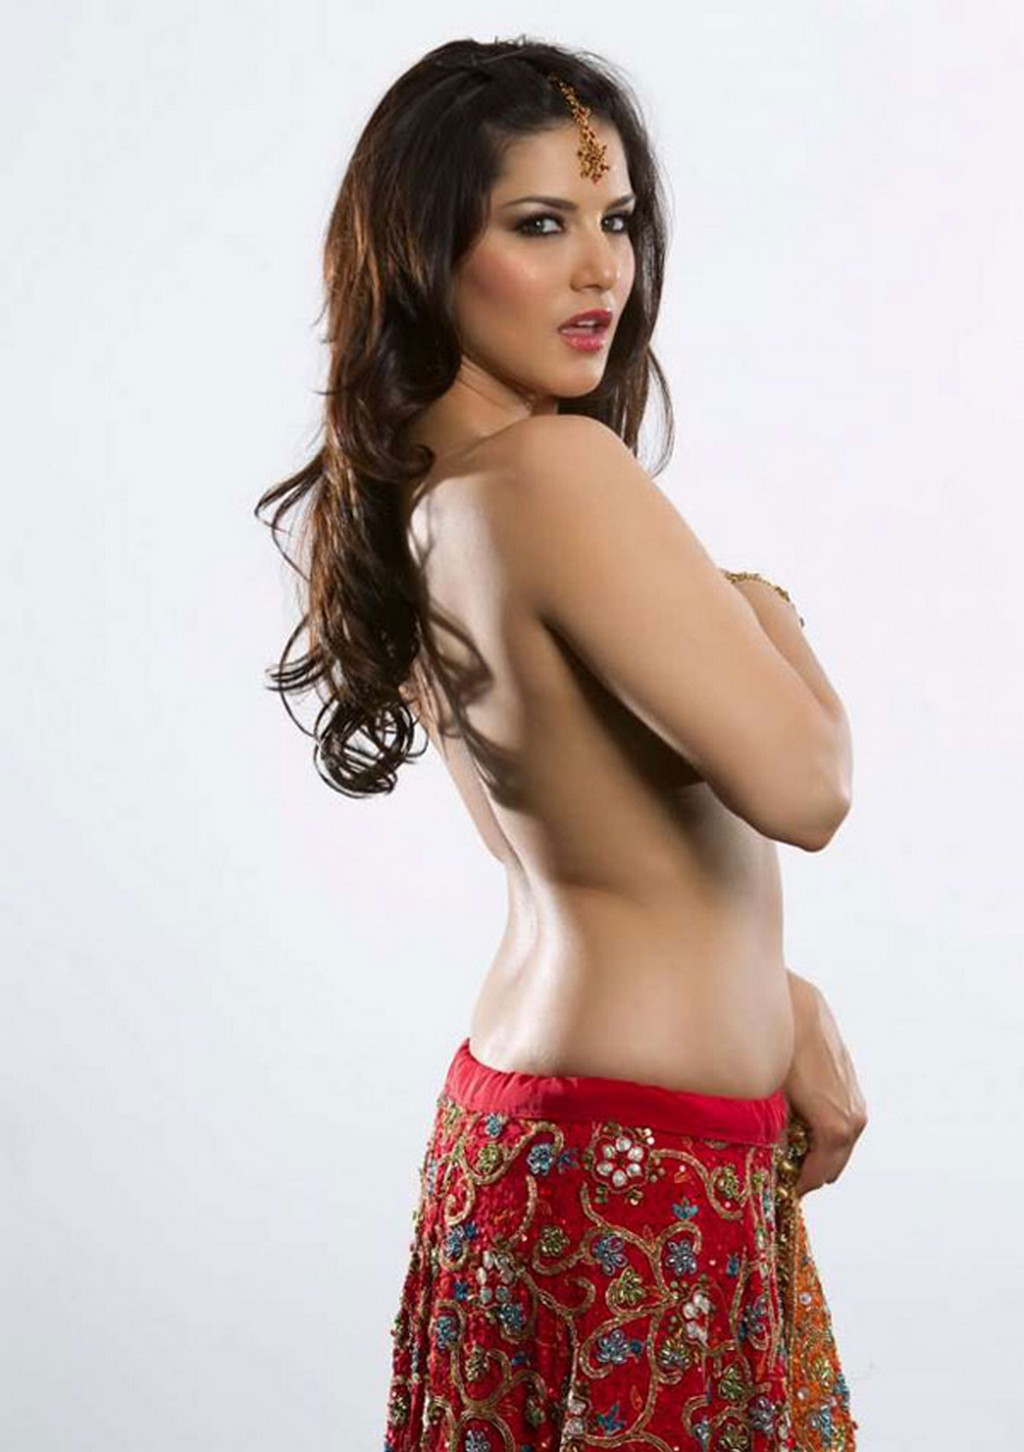 My World & My feelings: Hottest Photo shoot of Sunny Leone